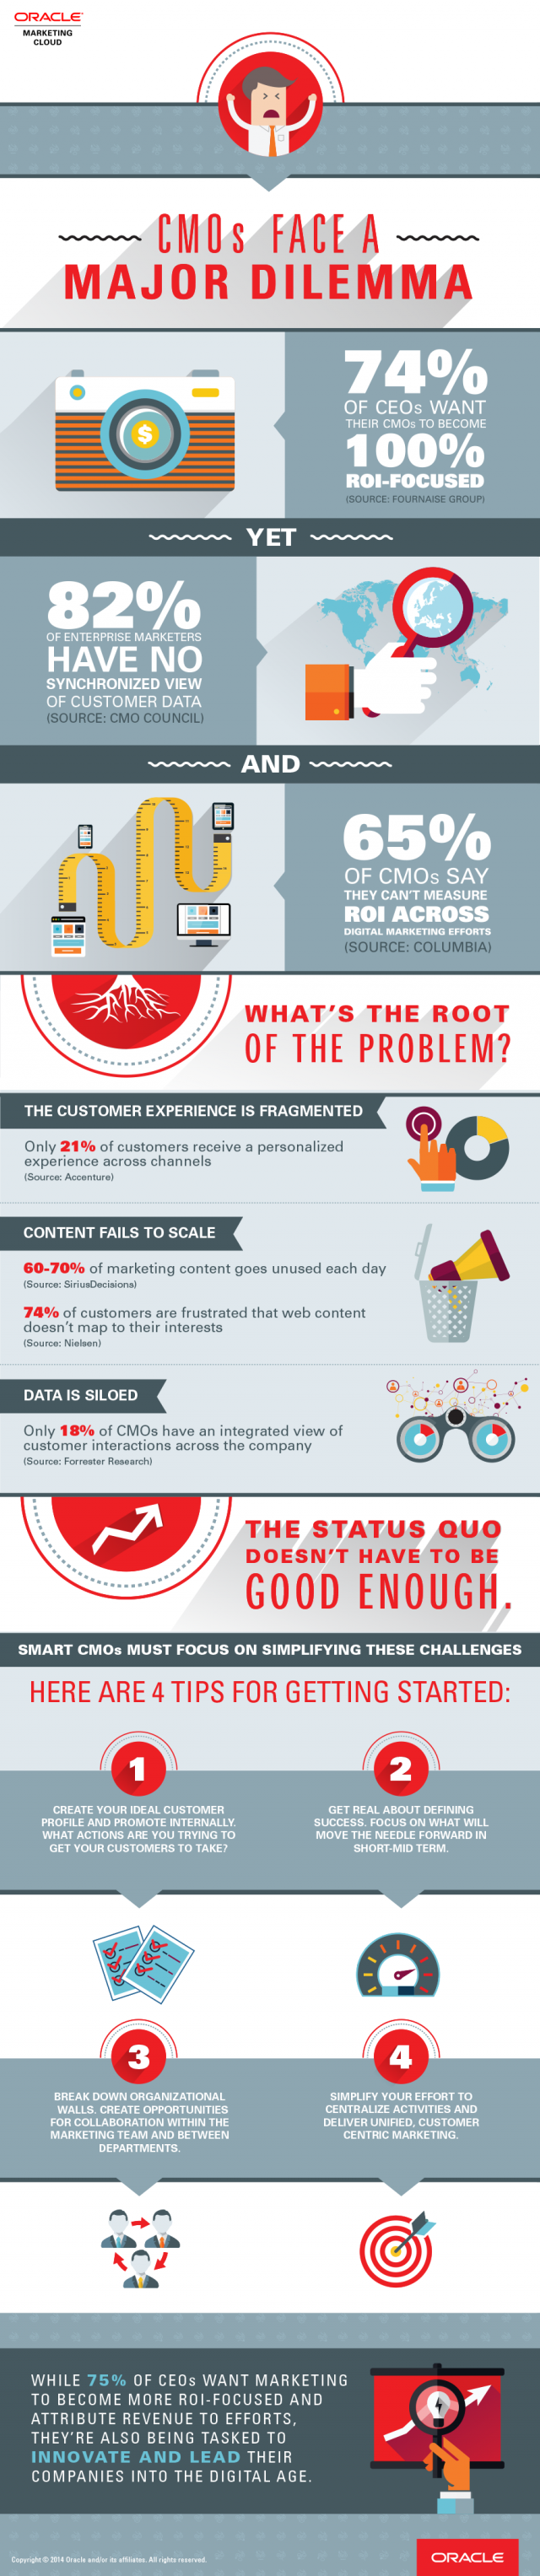 What are the biggest dilemmas facing #CMO's? | #Marketing #Infographic